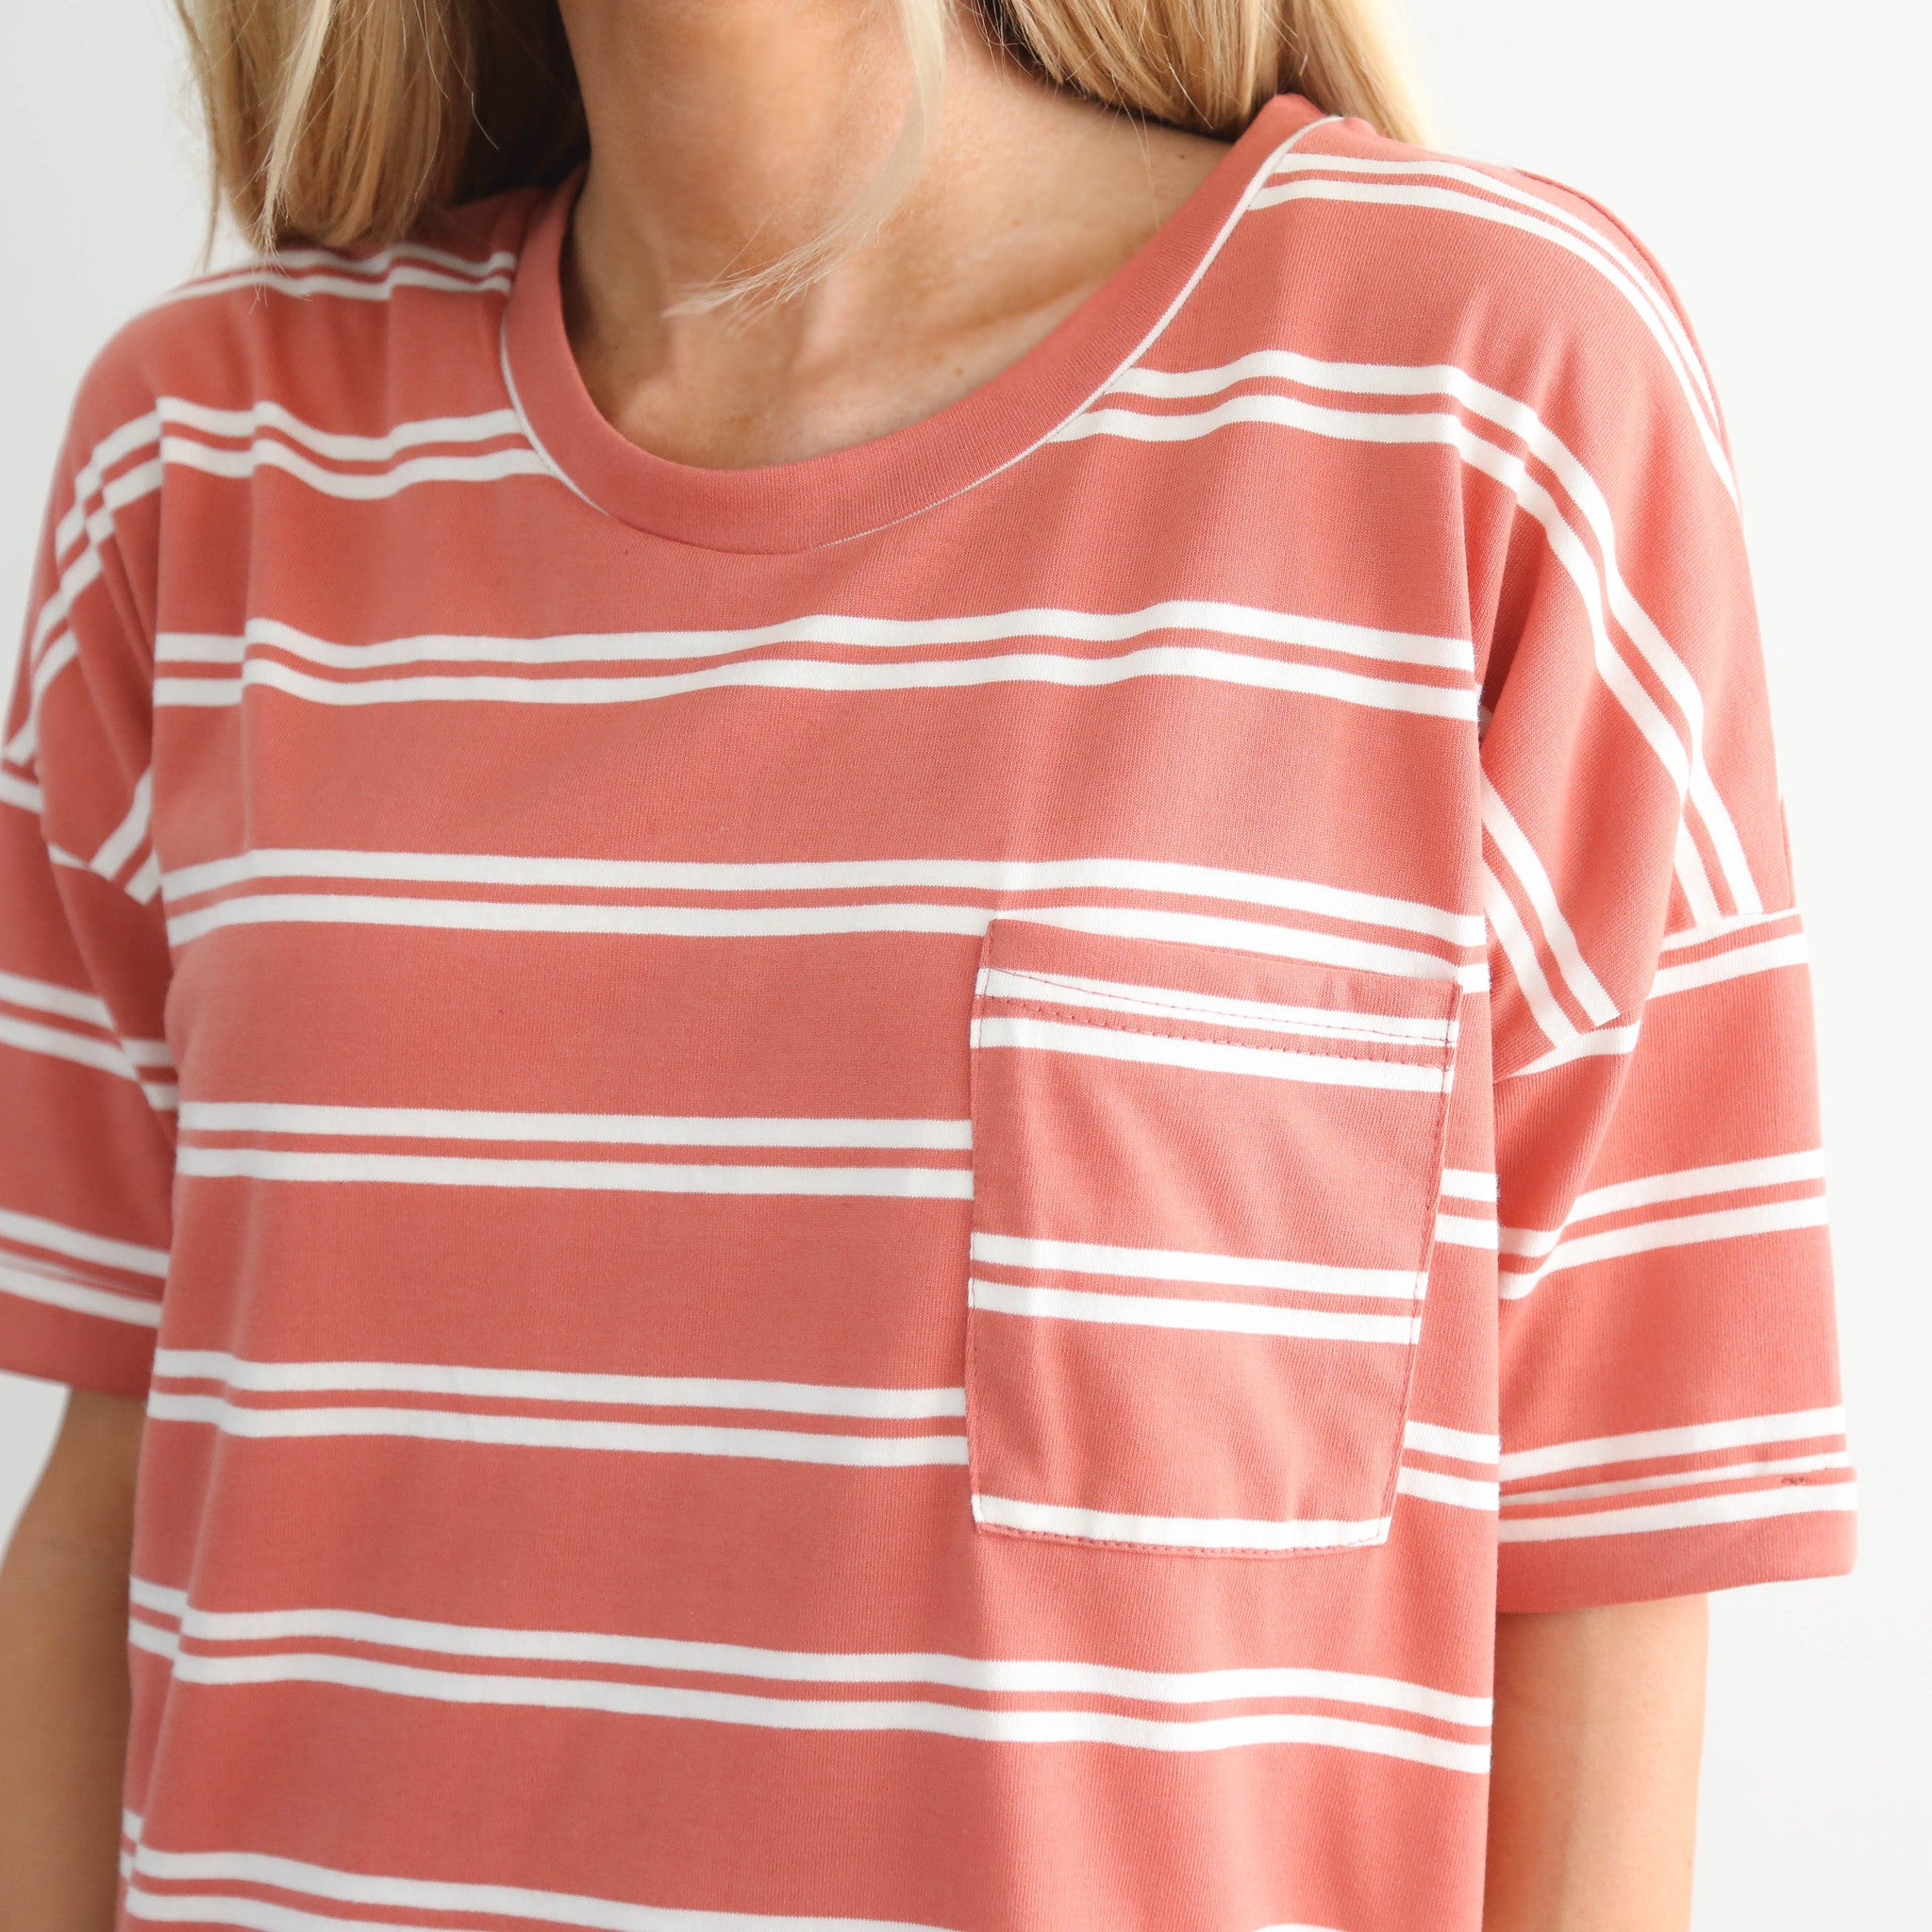 Canna Stripe Top